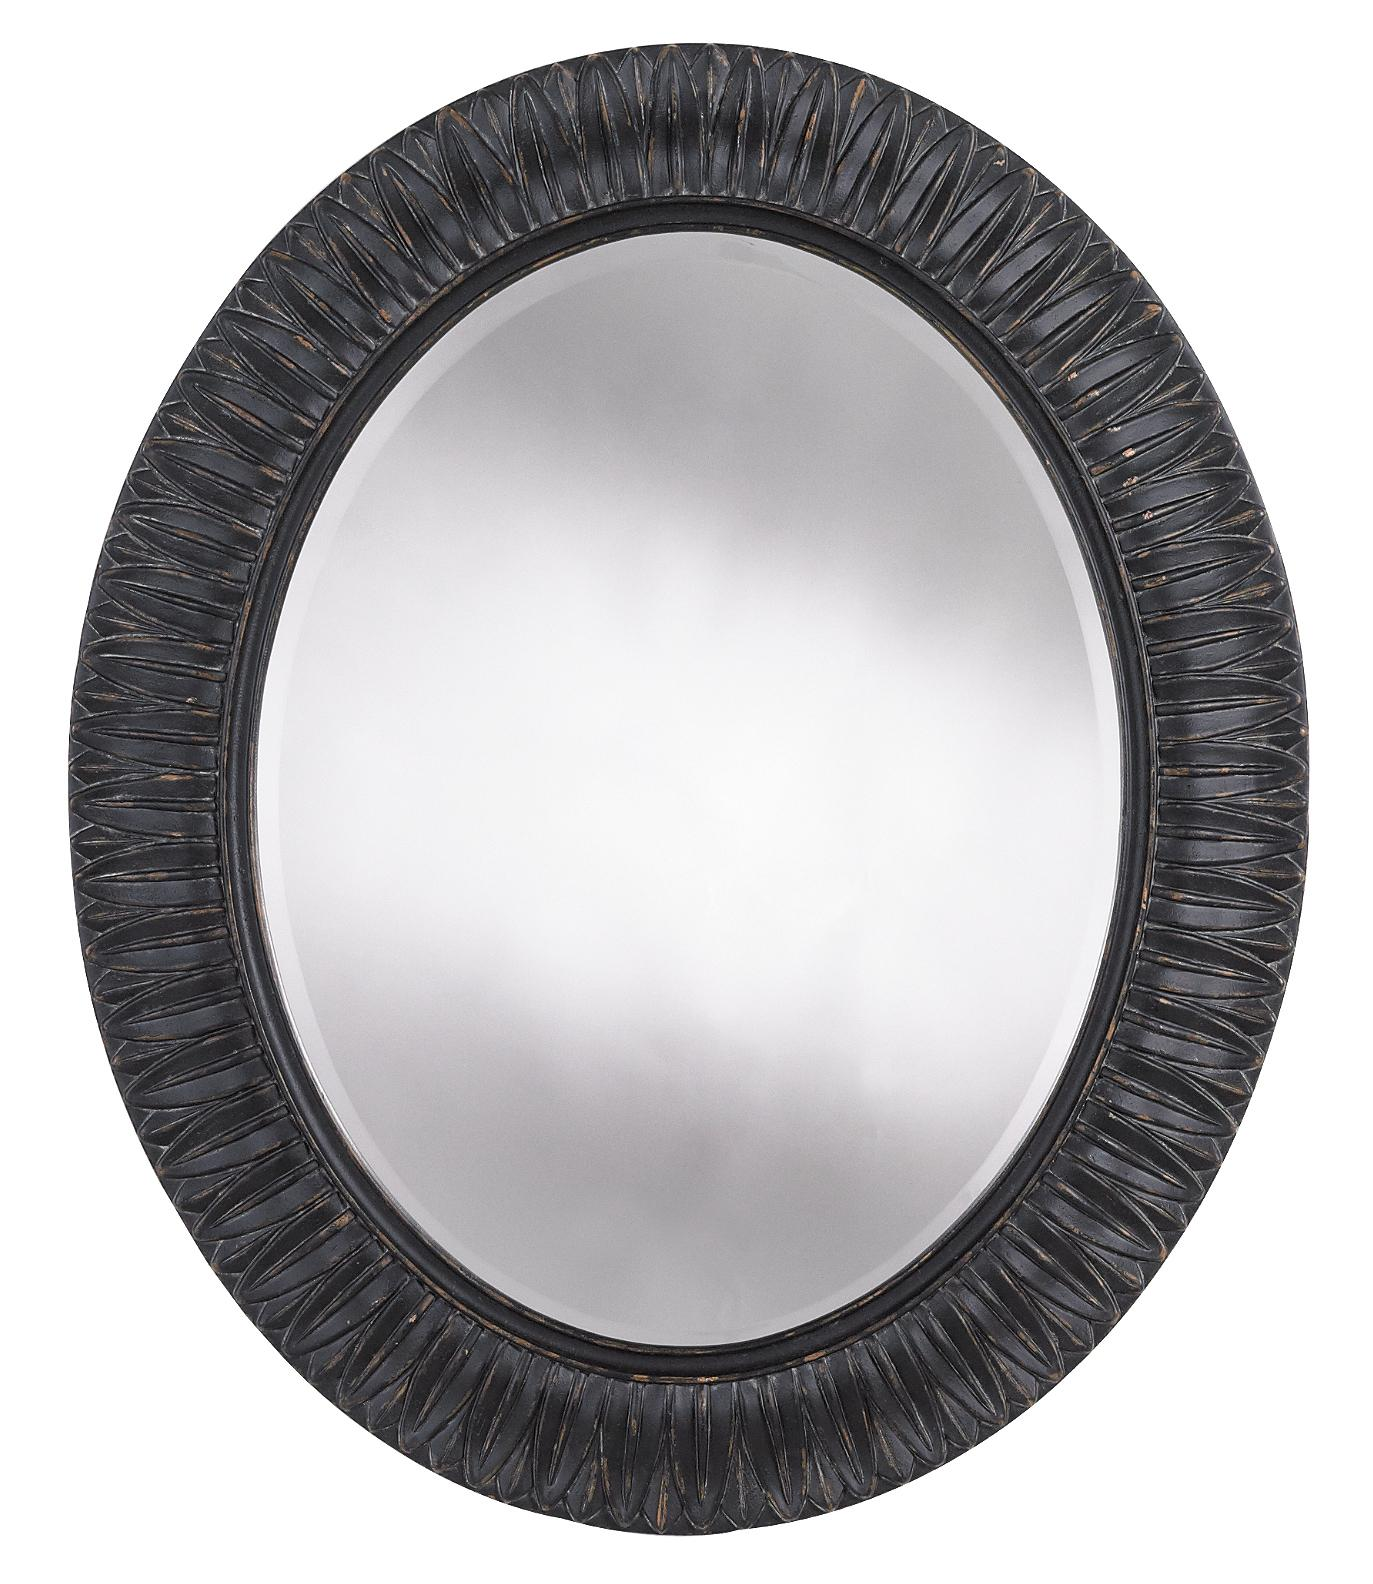 Stanley Furniture Arrondissement Jardin Mirror - Item Number: 222-83-31